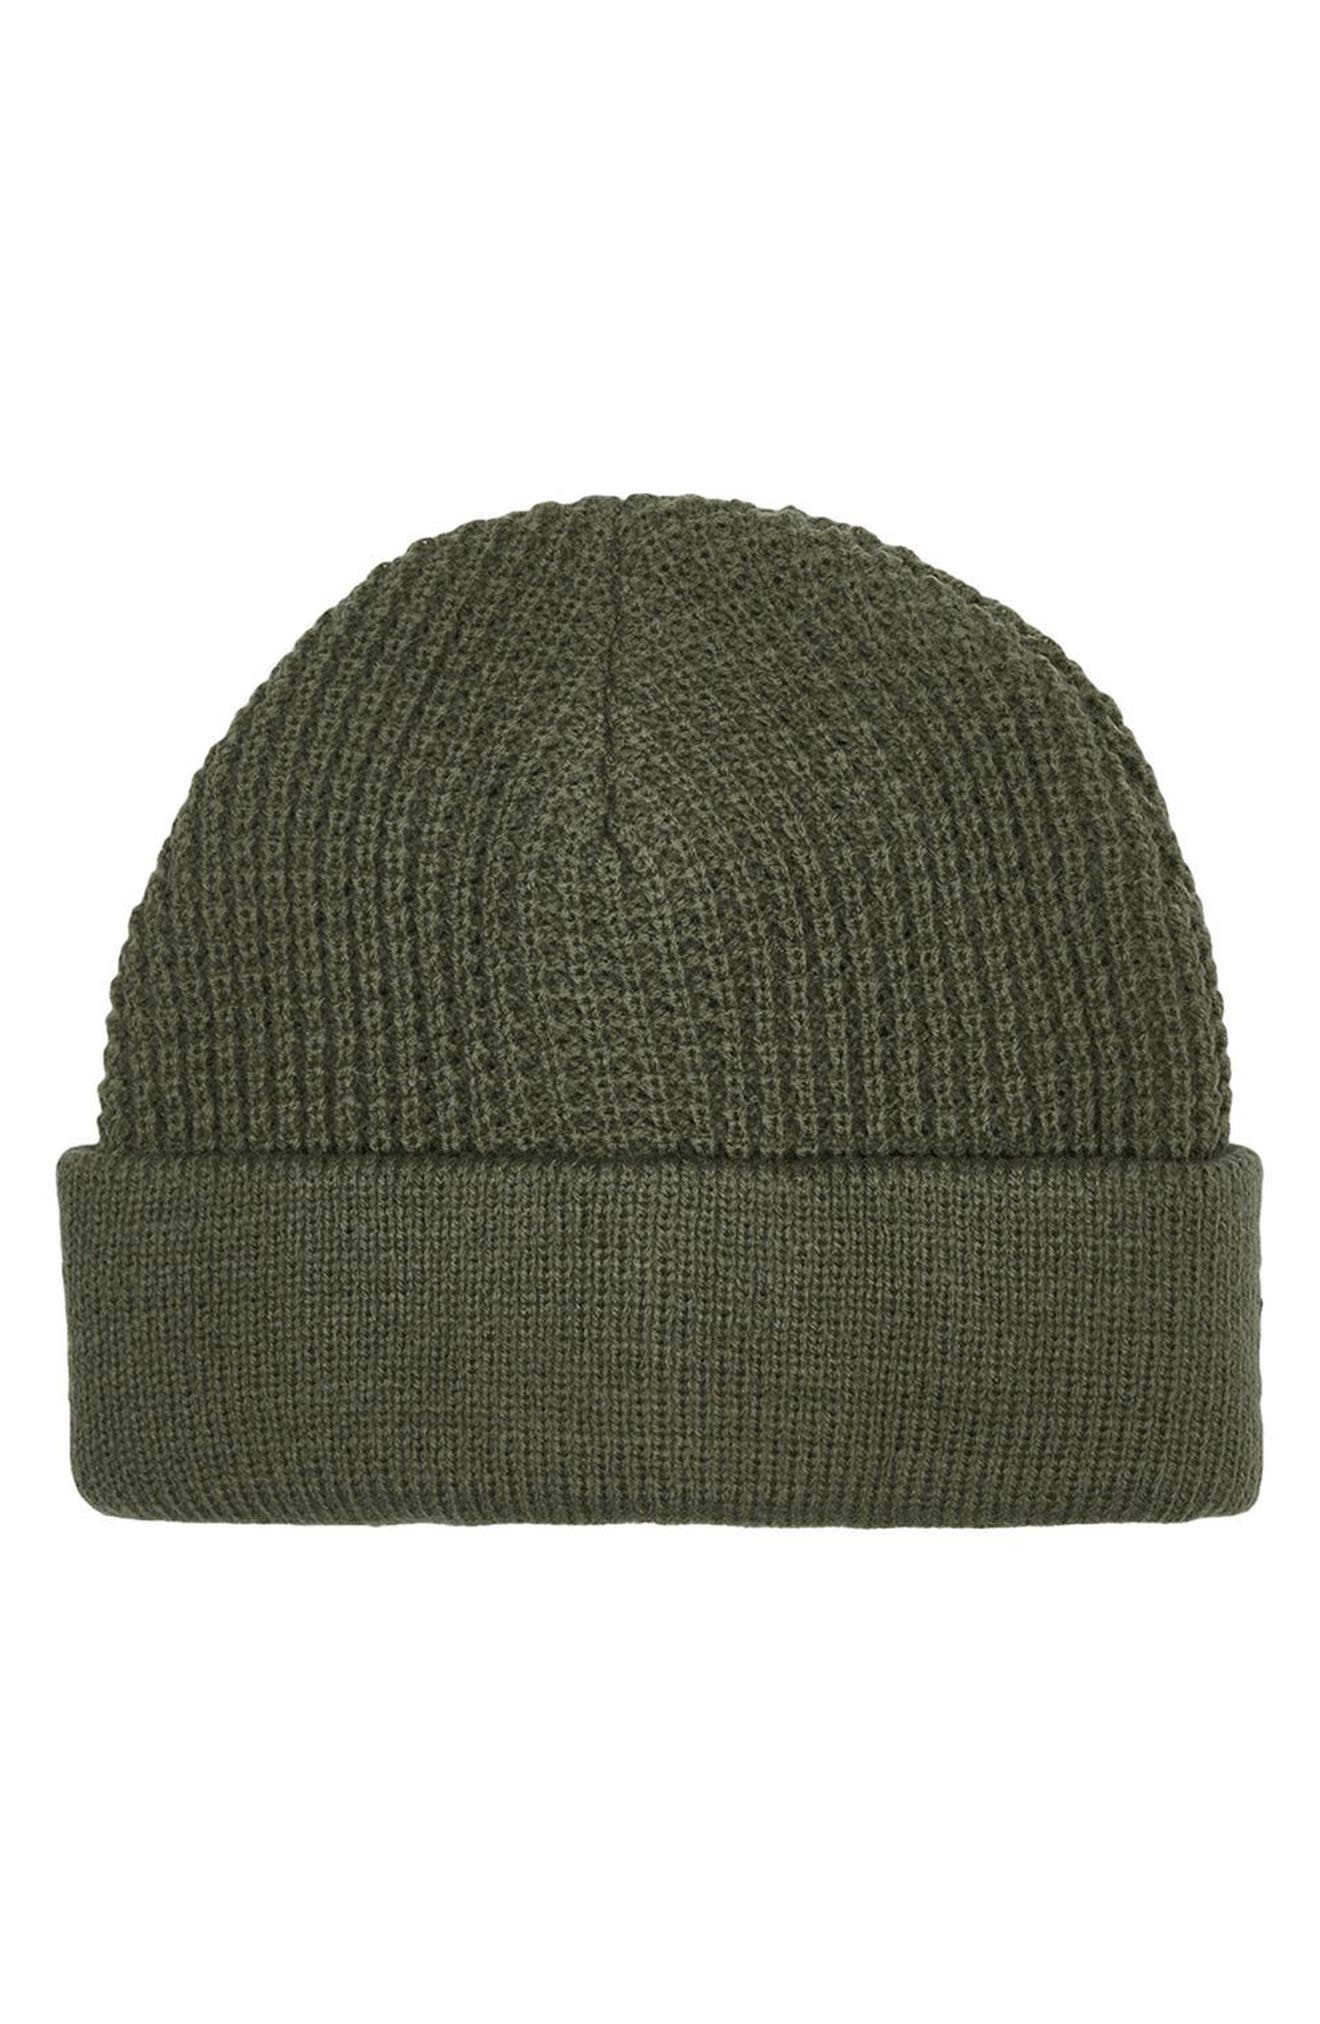 Knit Beanie,                             Main thumbnail 1, color,                             Olive